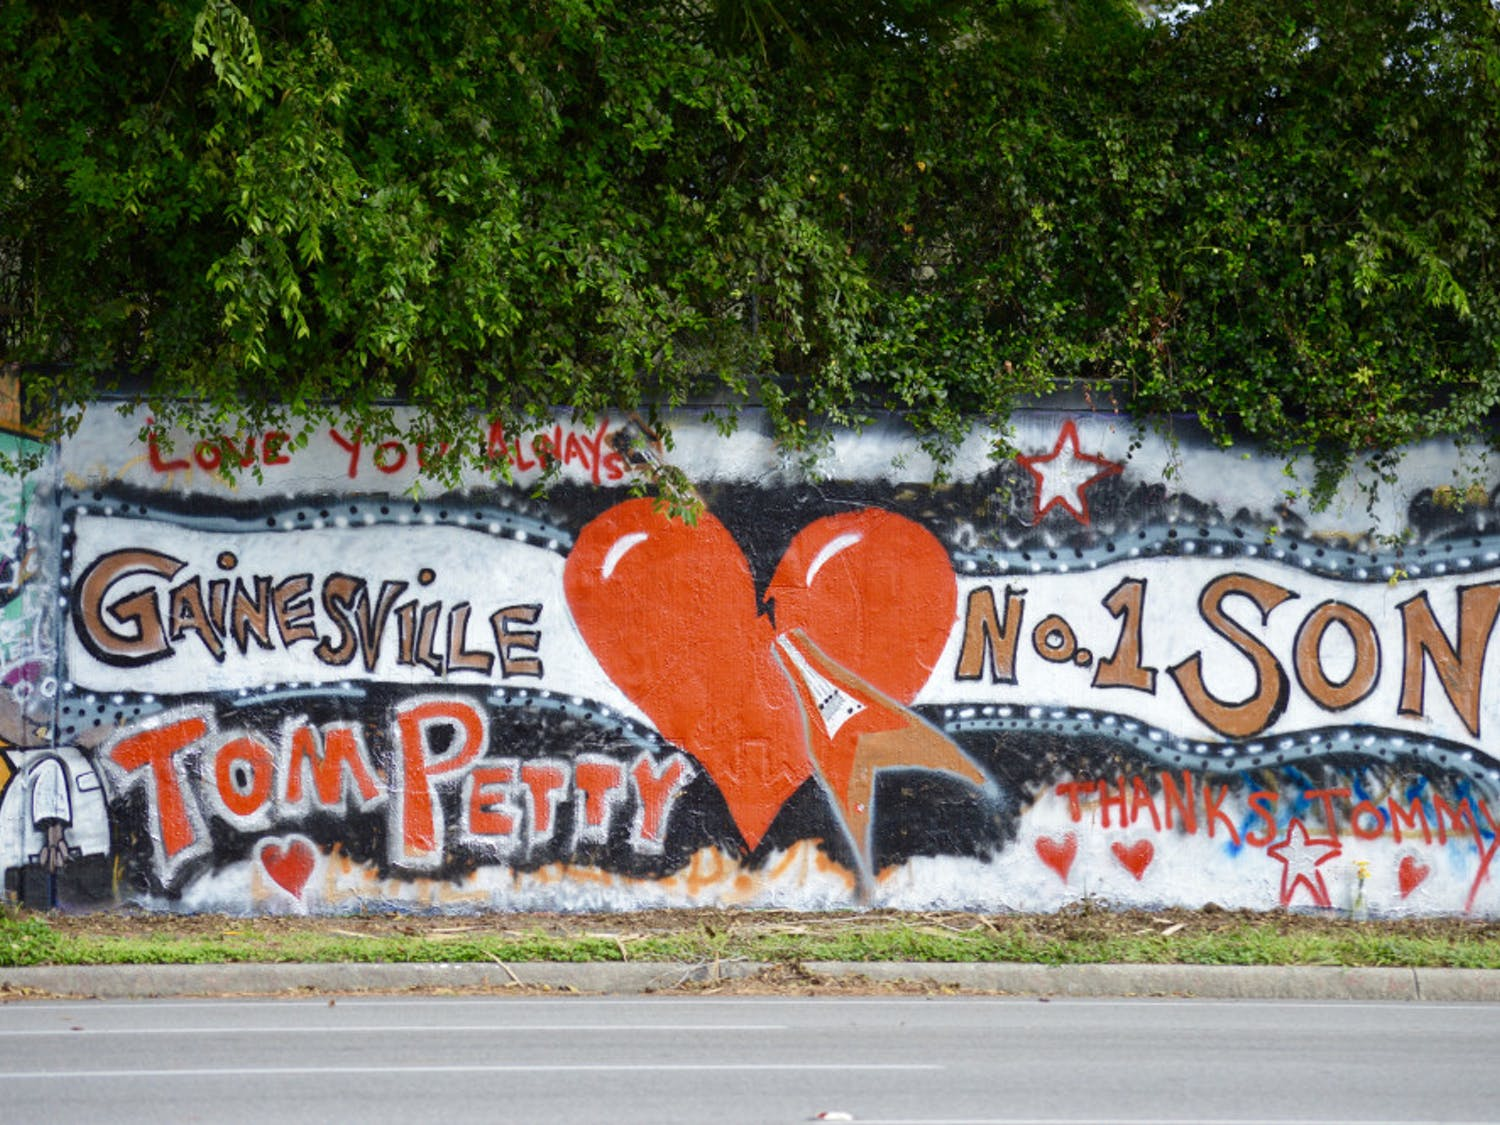 A mural dedicated to Gainesville native Tom Petty appeared on the 34th Street Wall in Gainesville, Florida following the death of the musician.